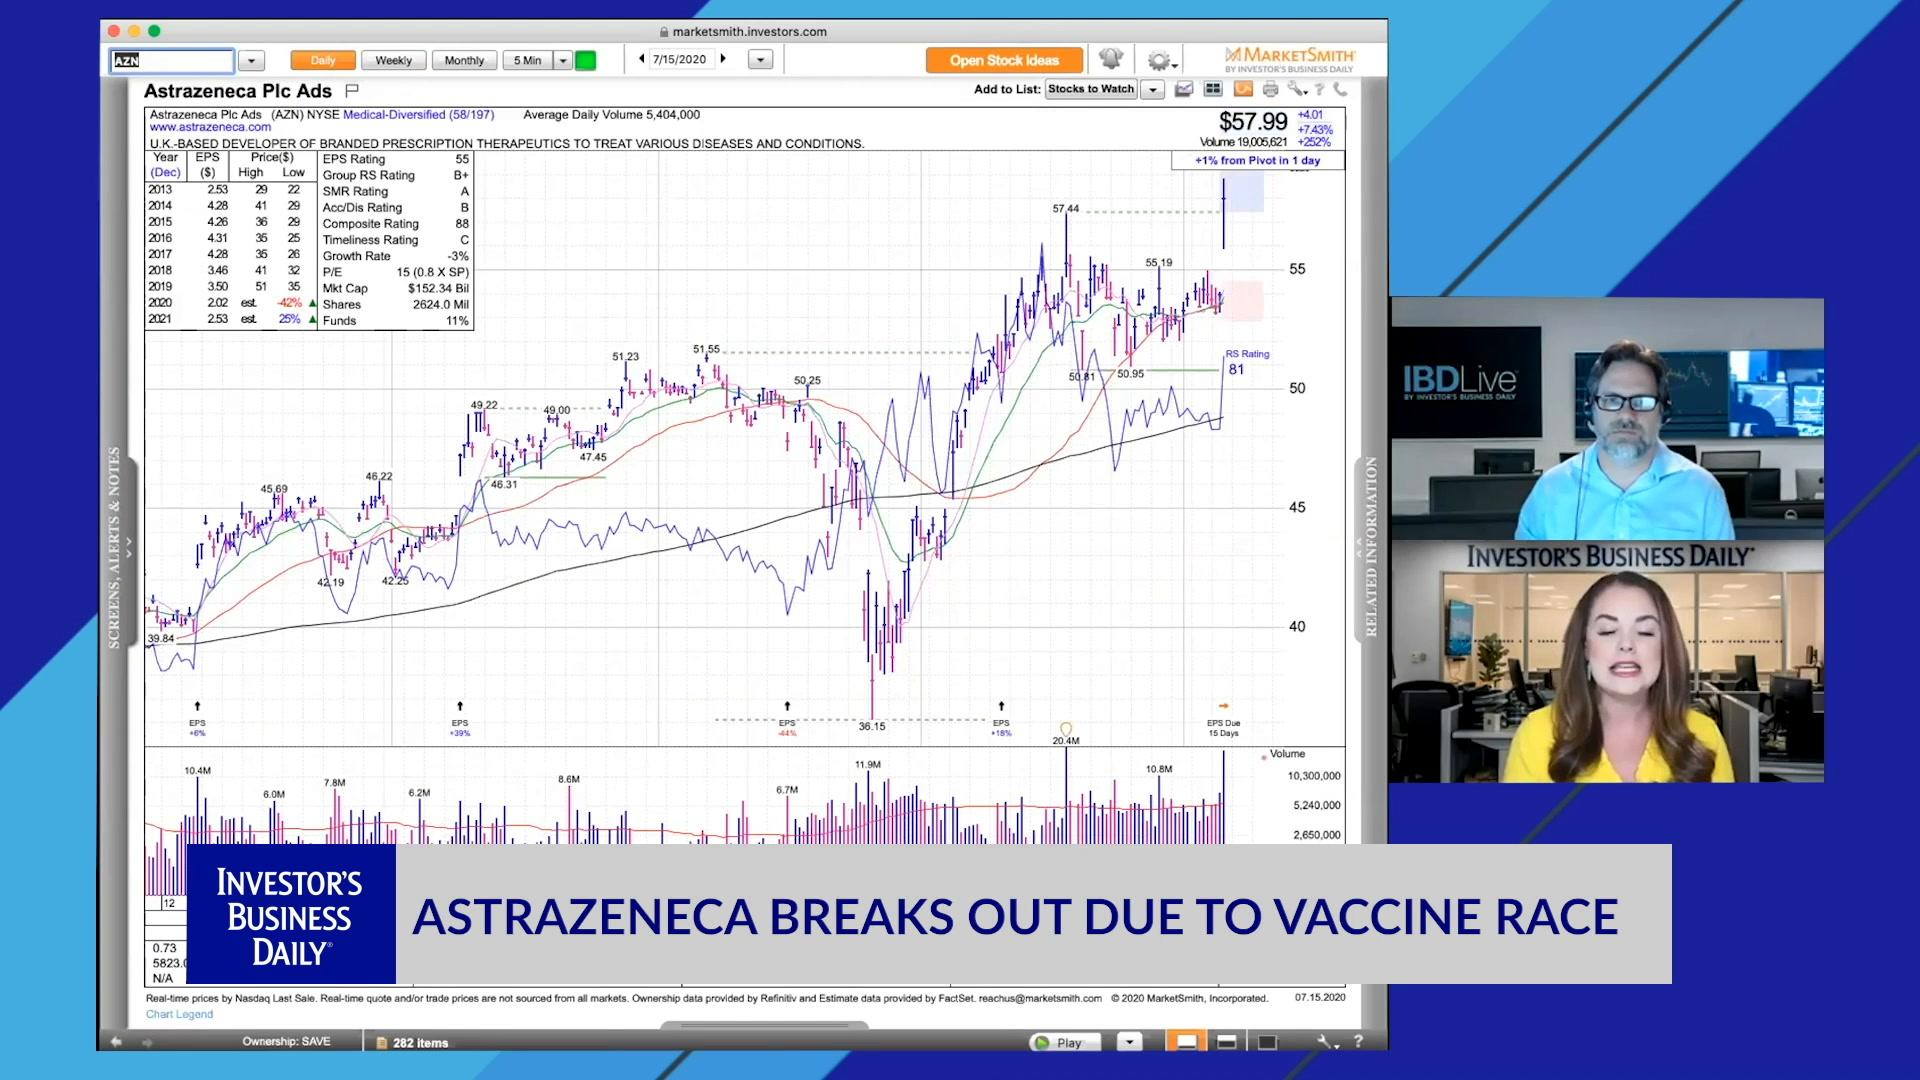 AstraZeneca Breaks Out Due To Vaccine Race Video